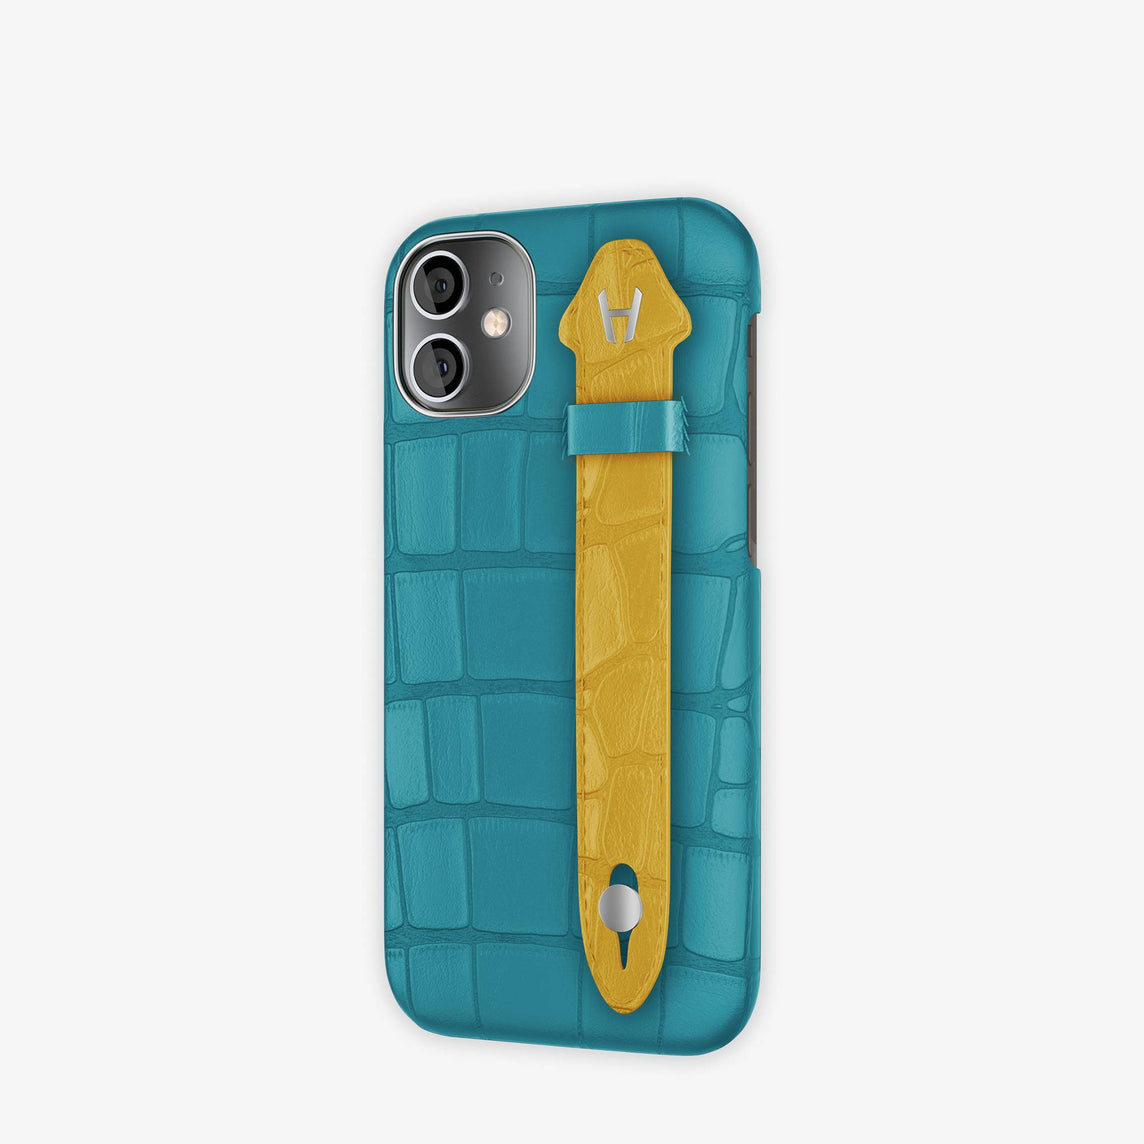 Alligator Side Finger Case iPhone 12 Mini | Blue Teal/Yellow -Stainless Steel